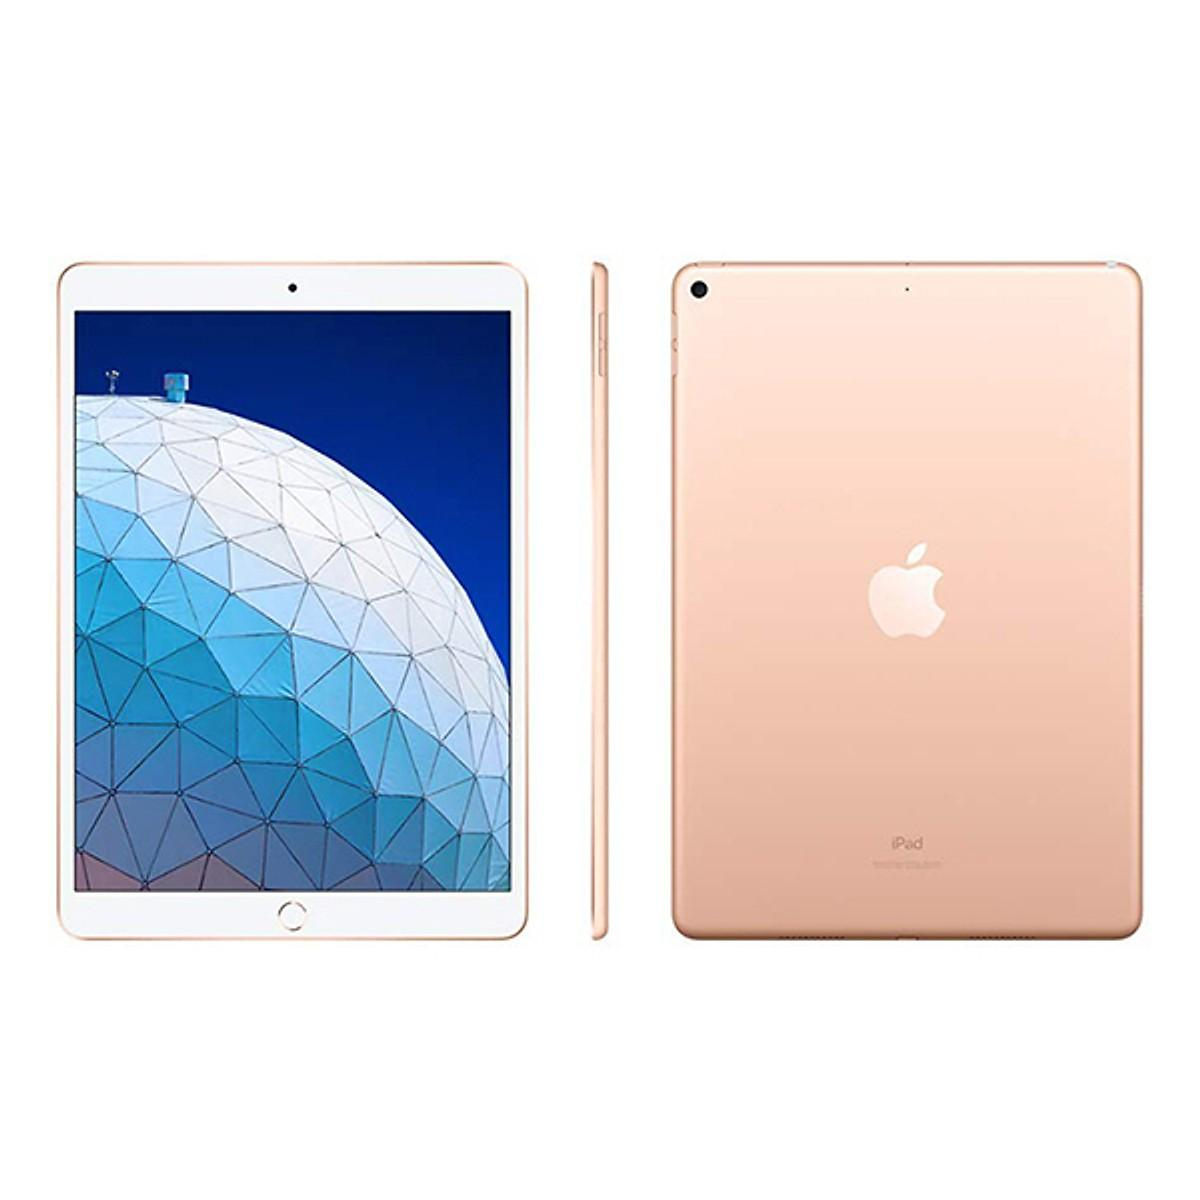 Ipad Air 10.5 WiFi + Cellular 64GB New 2019 -